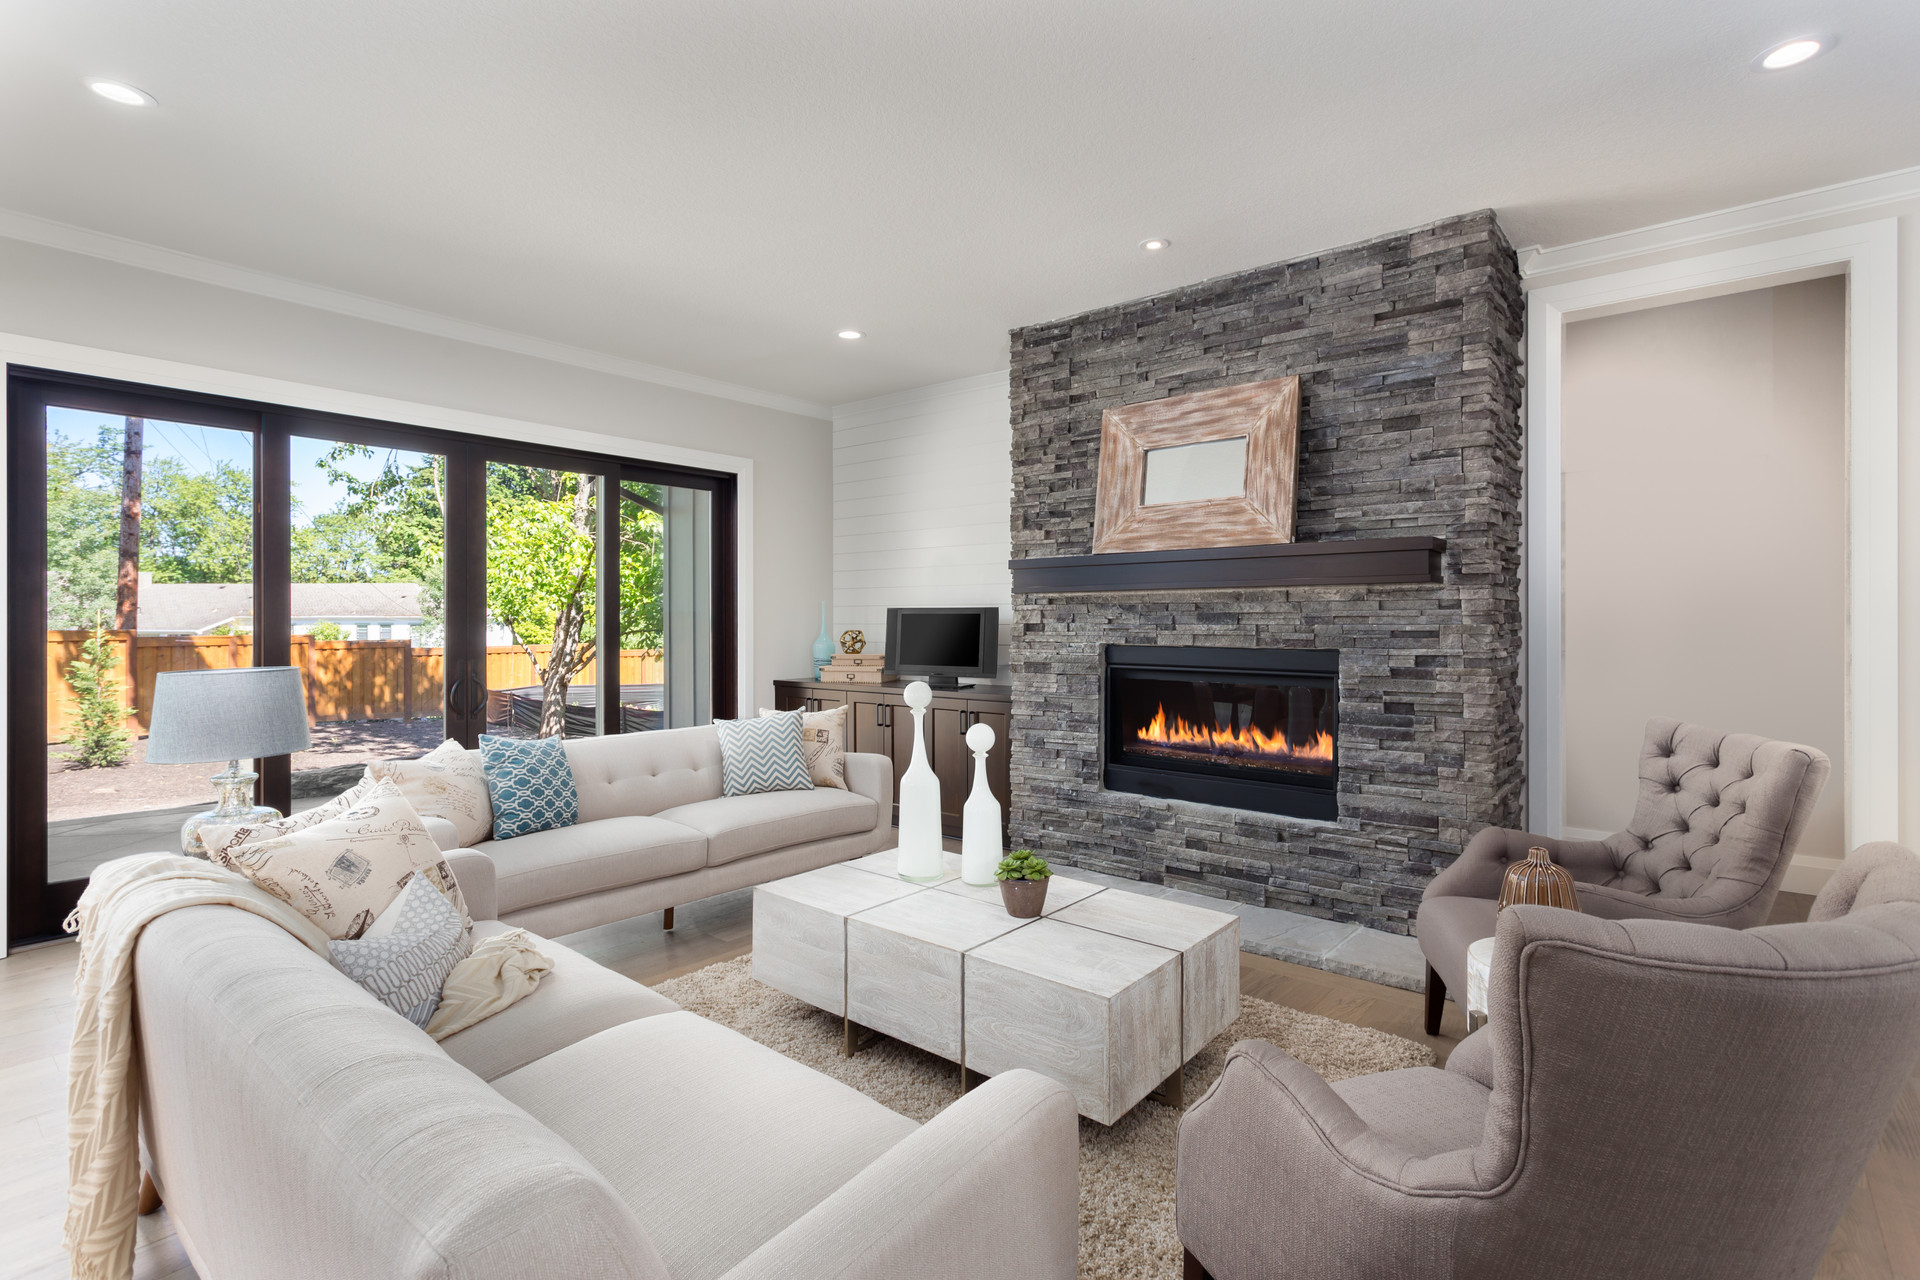 Living room interior in new luxury home